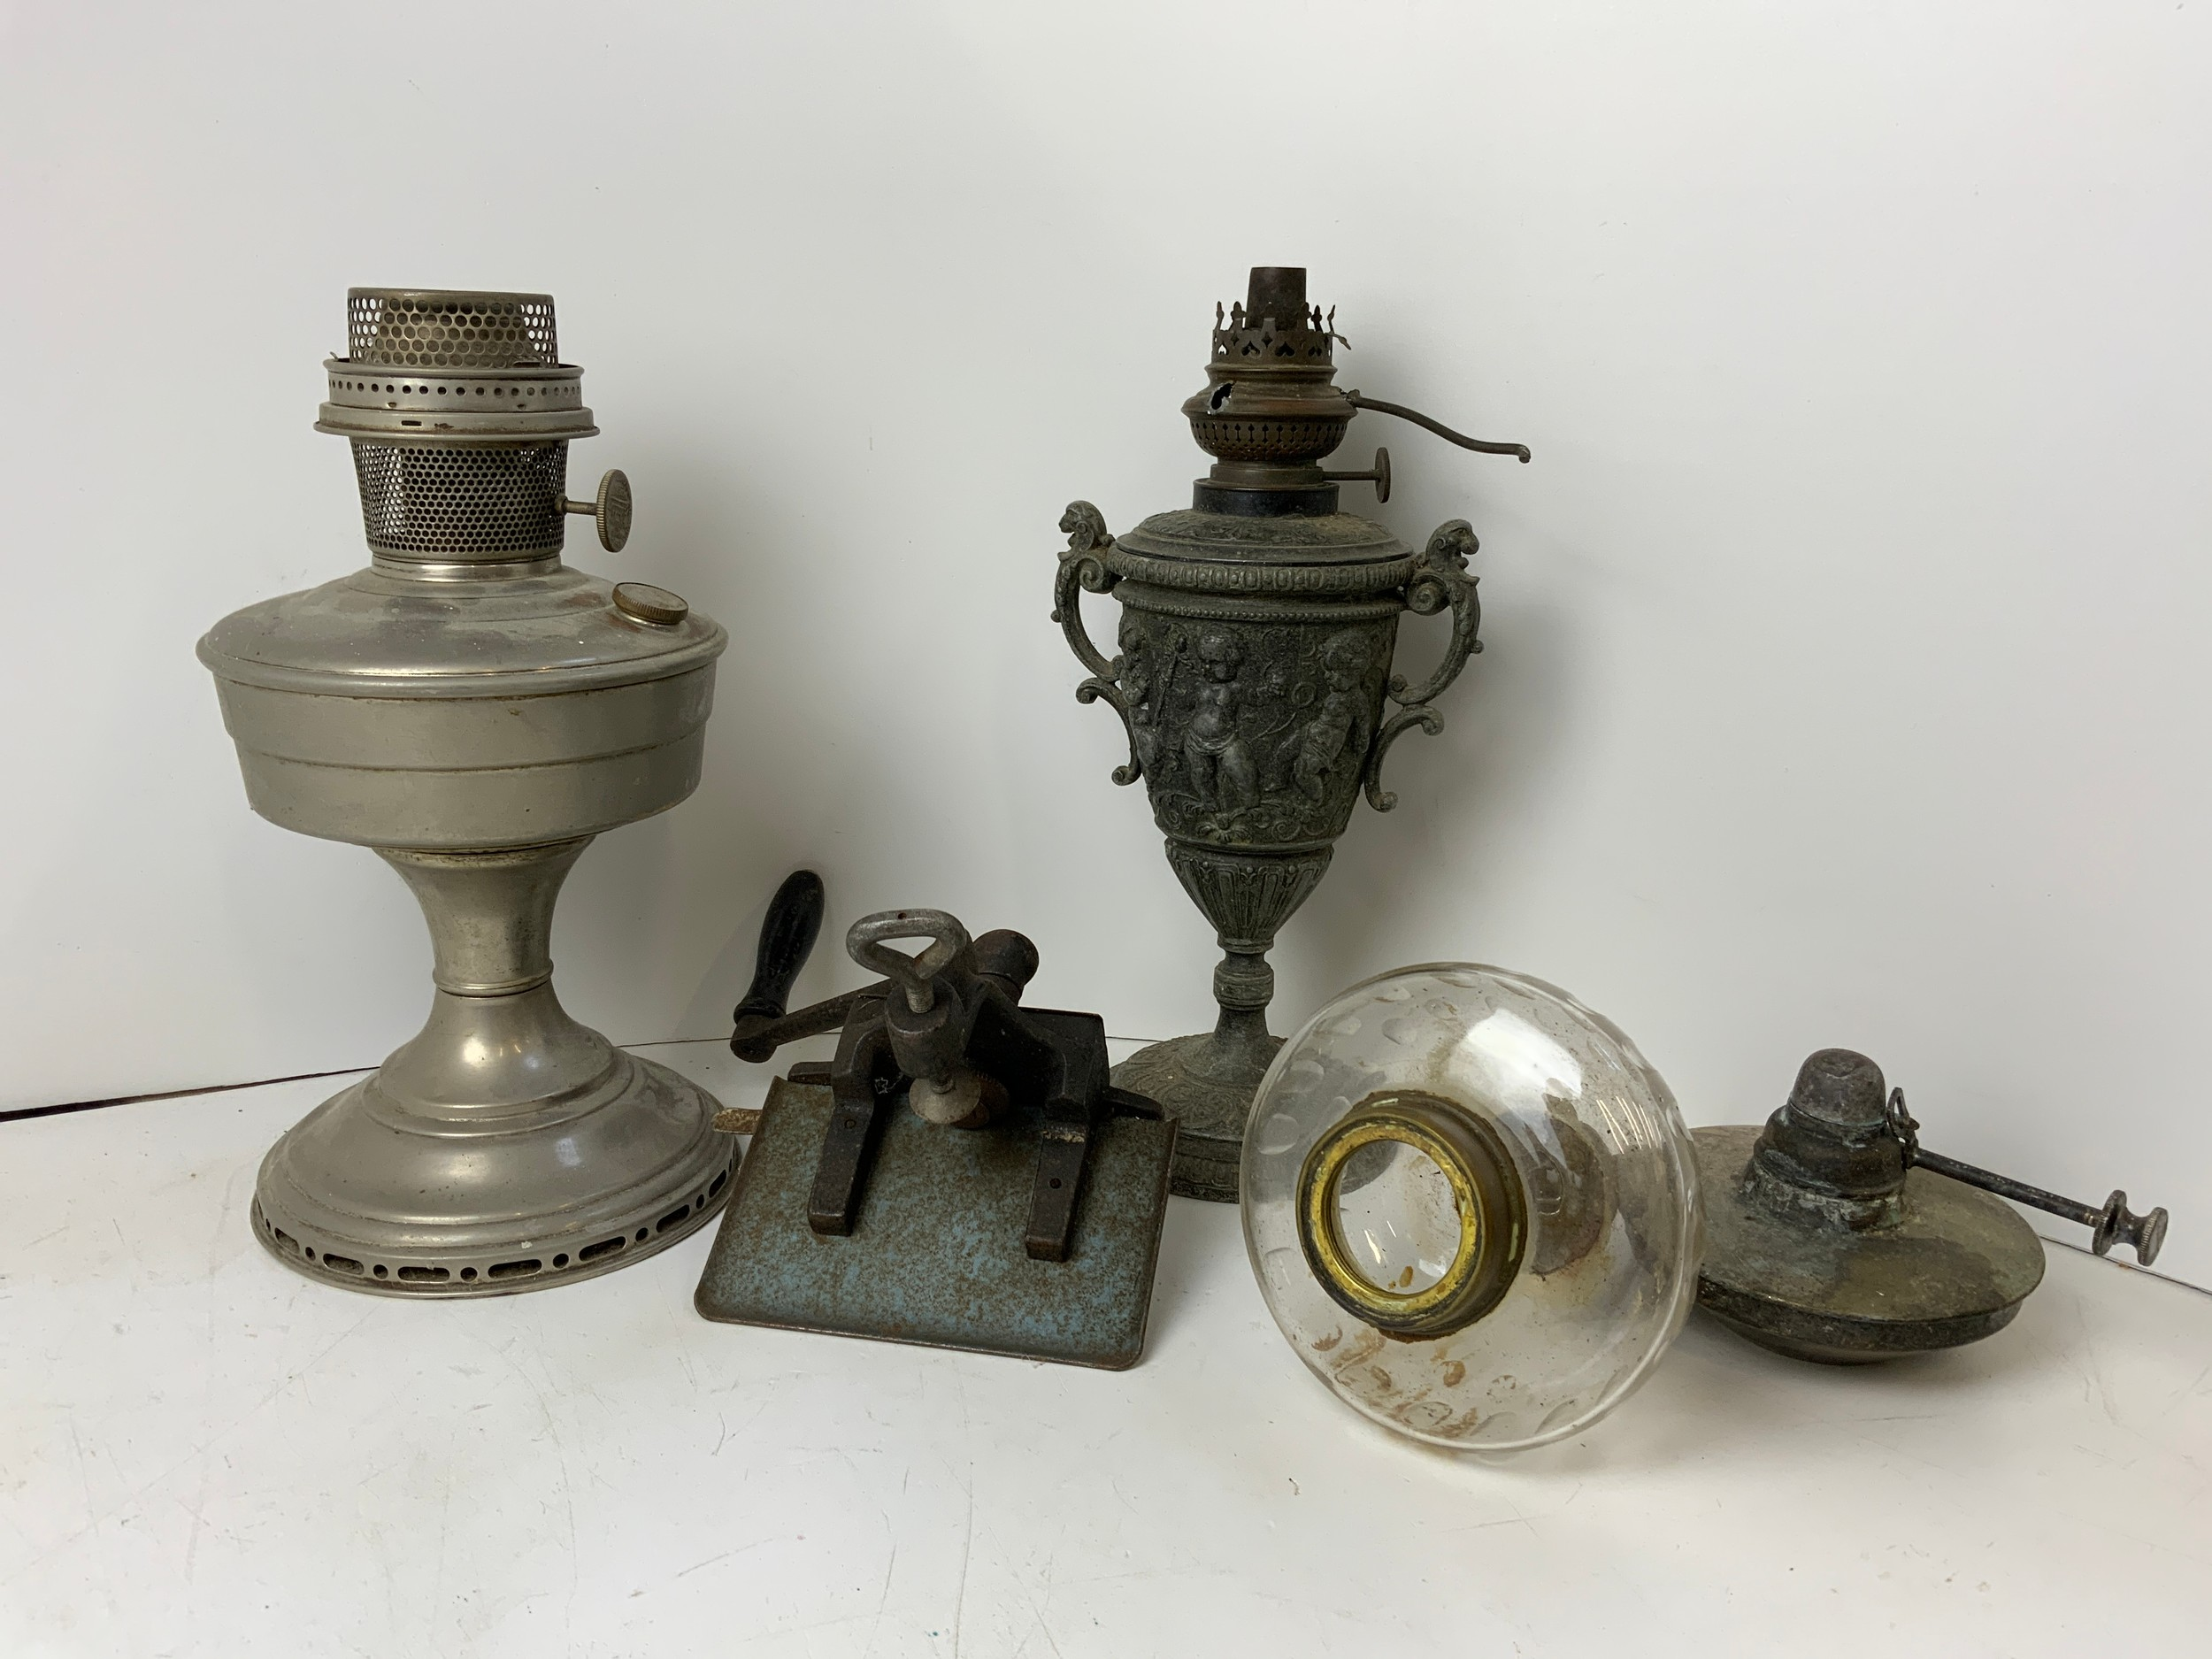 Leather/Card Crimper and Oil Lamp Parts